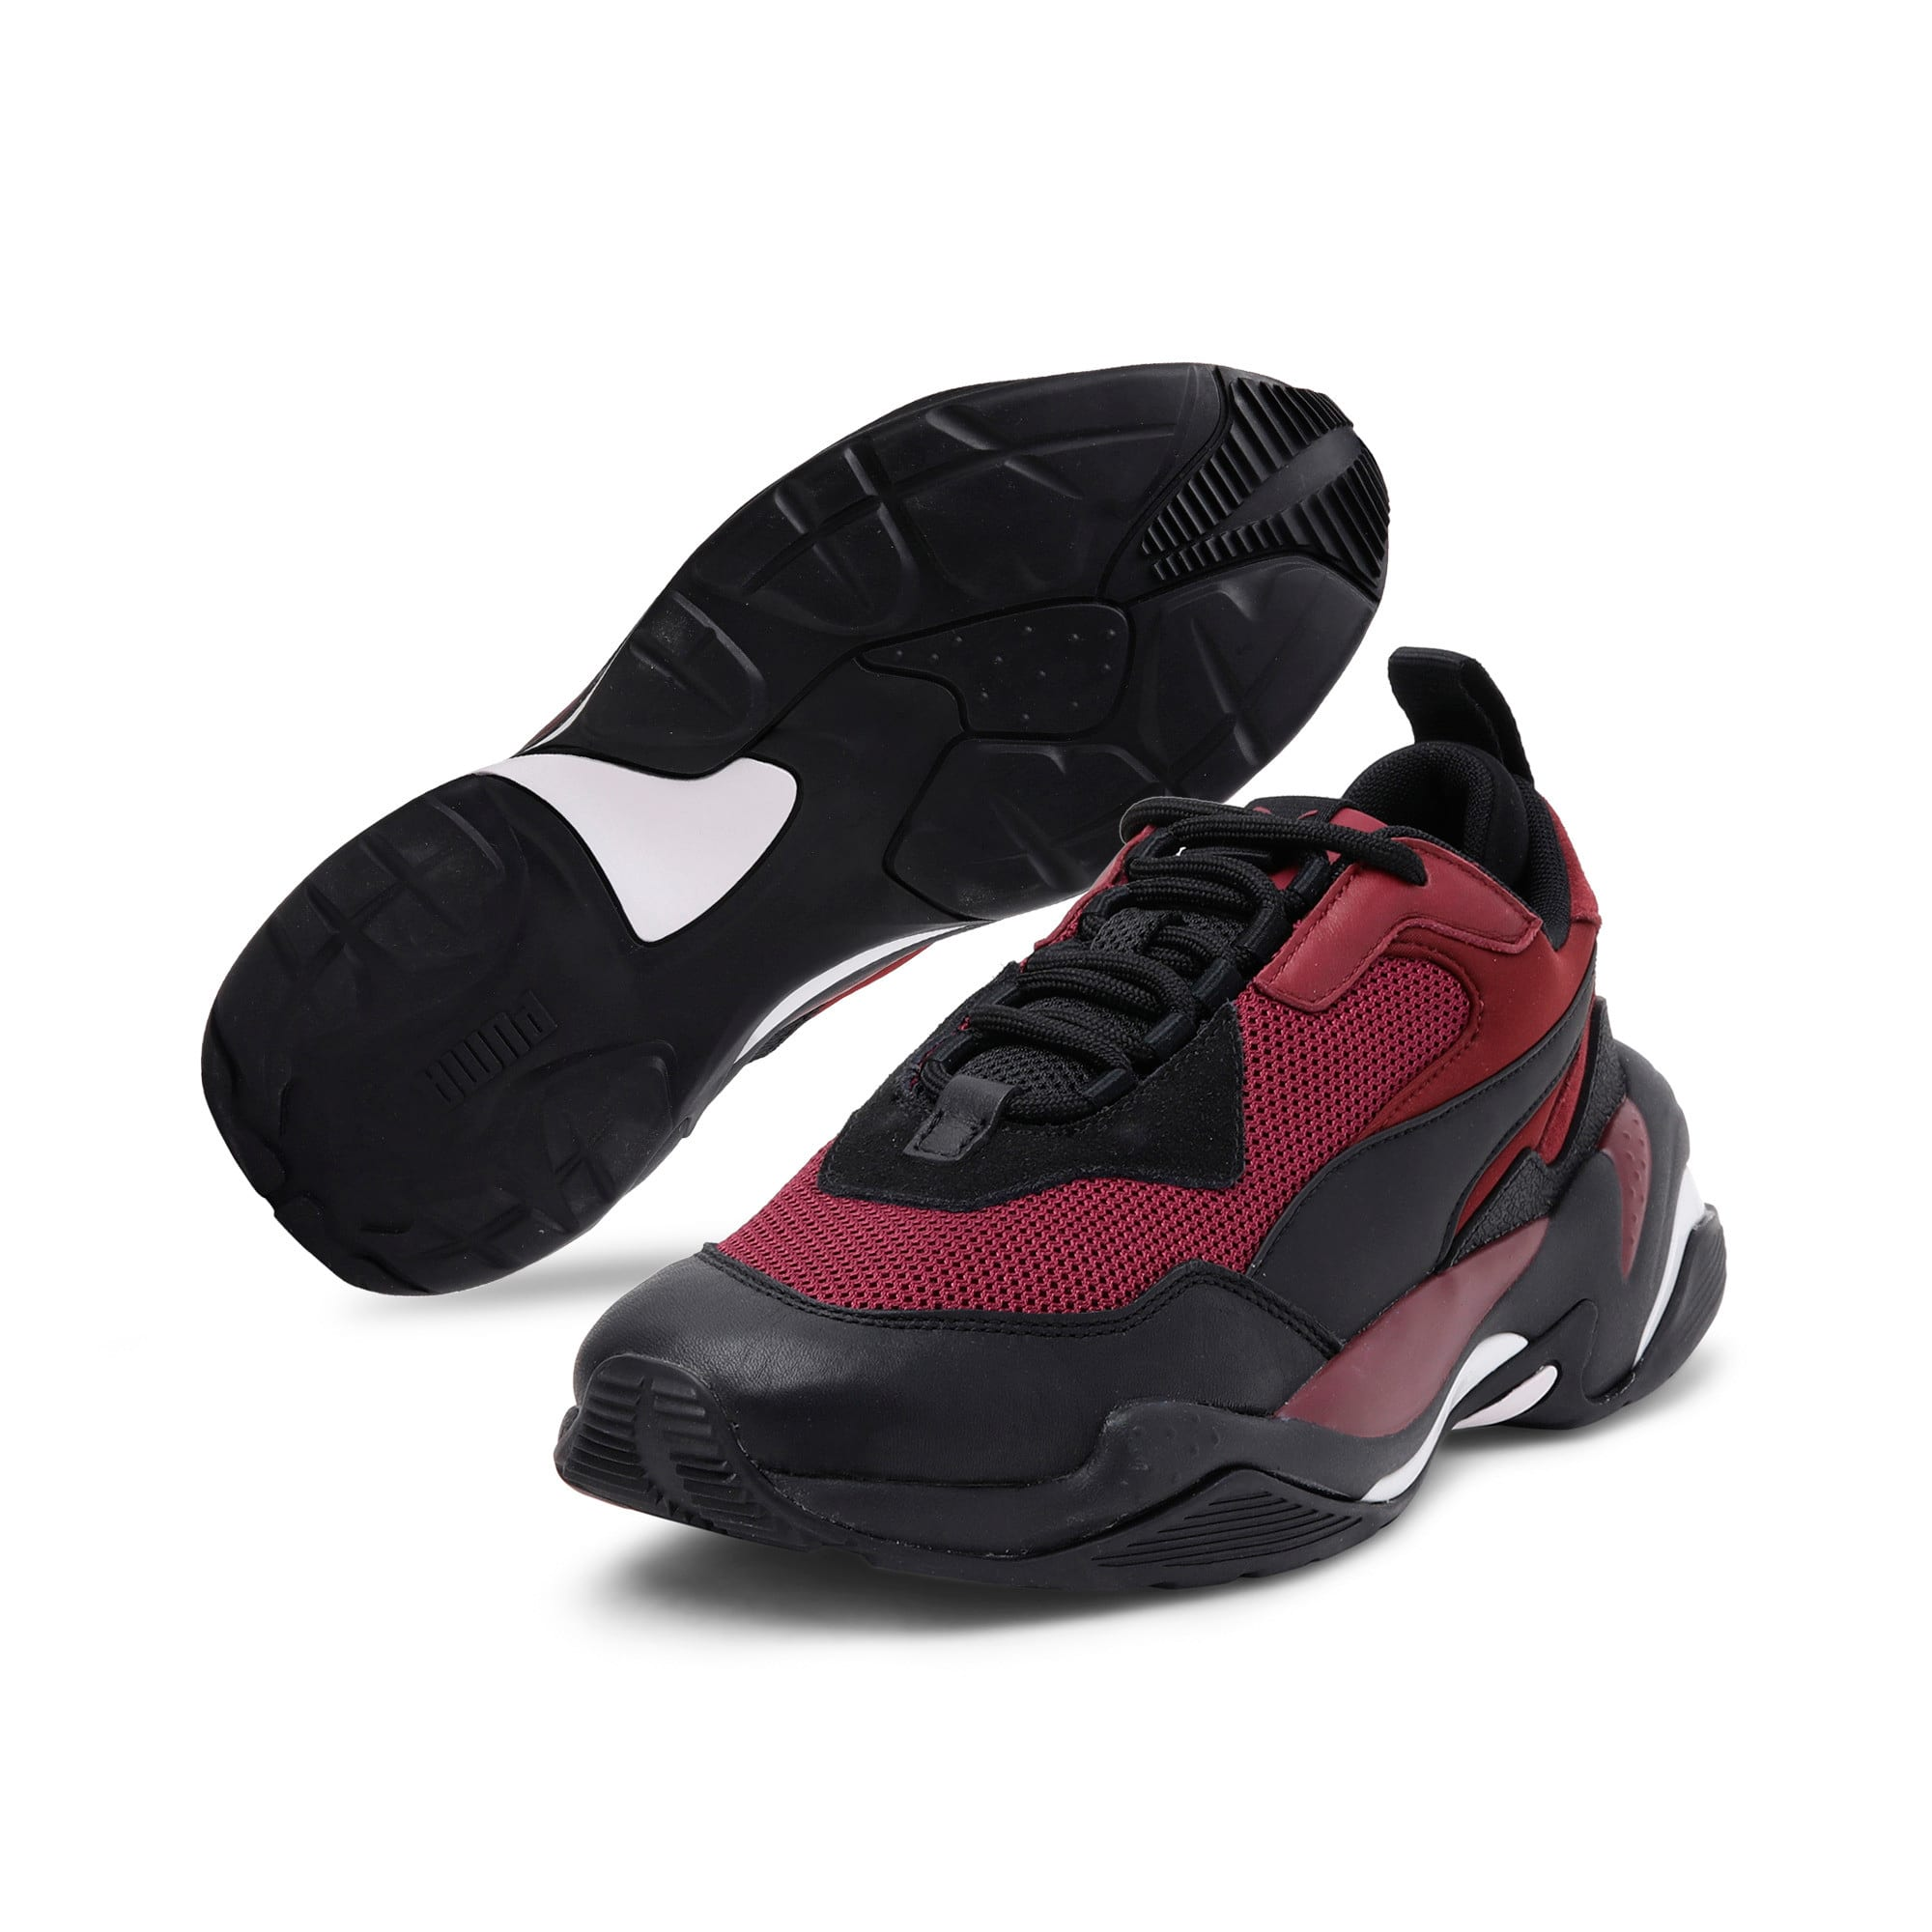 Thumbnail 2 of Thunder Spectra Trainers, Rhododendron-P Black-T Port, medium-IND